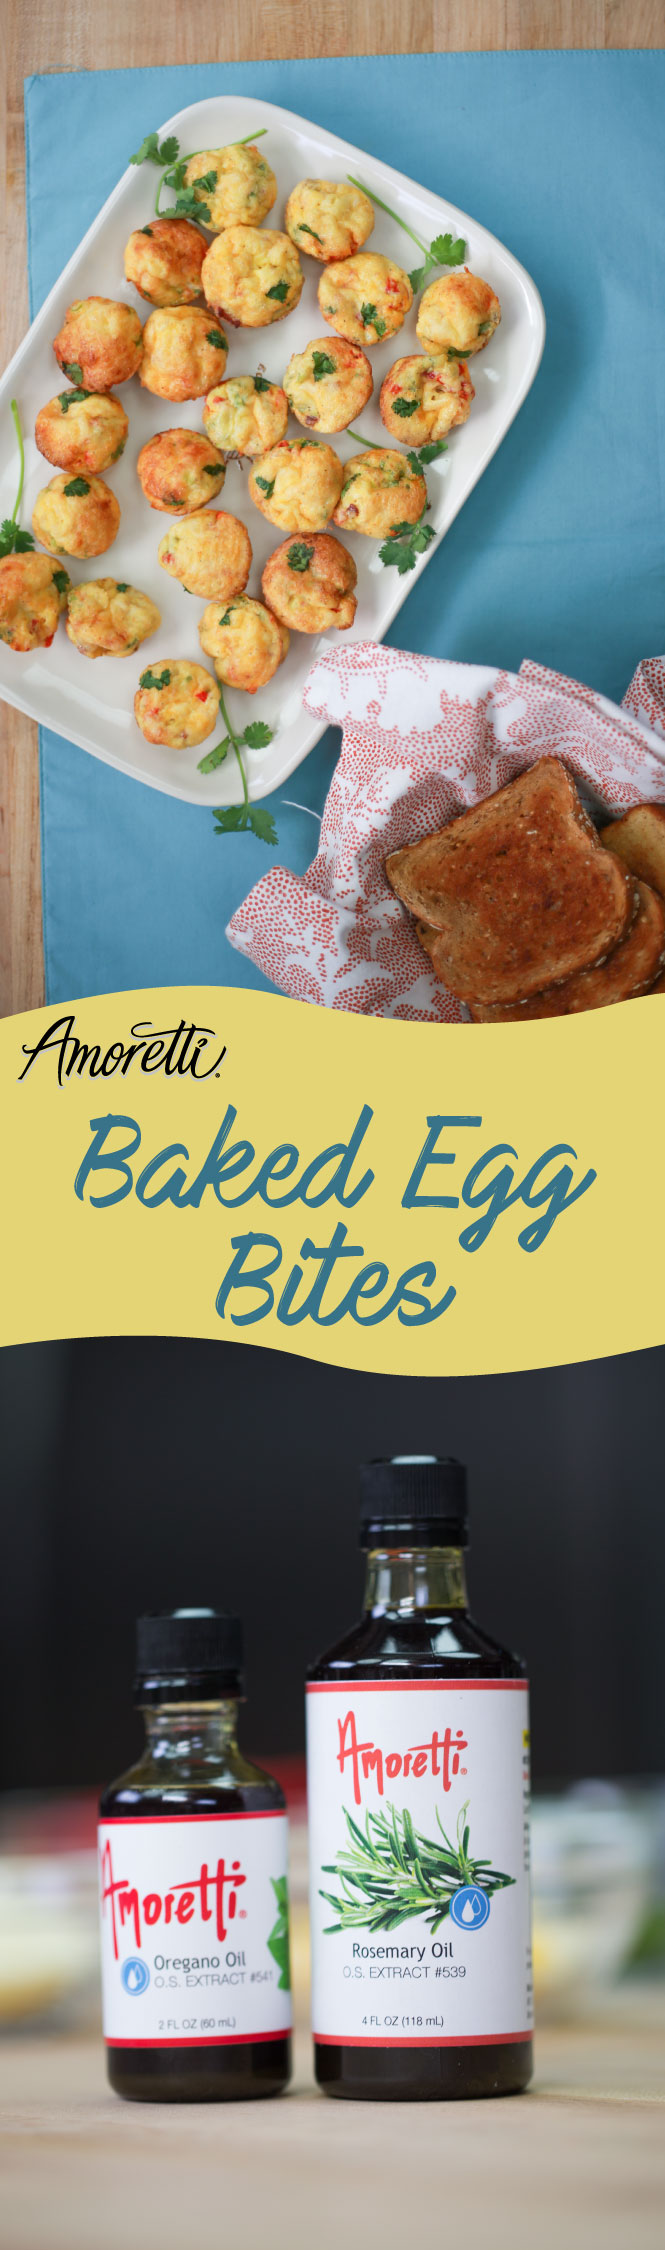 Amoretti Baked Egg Bites: Save these delicious Baked Egg Bites for a quick on-the-go breakfast!